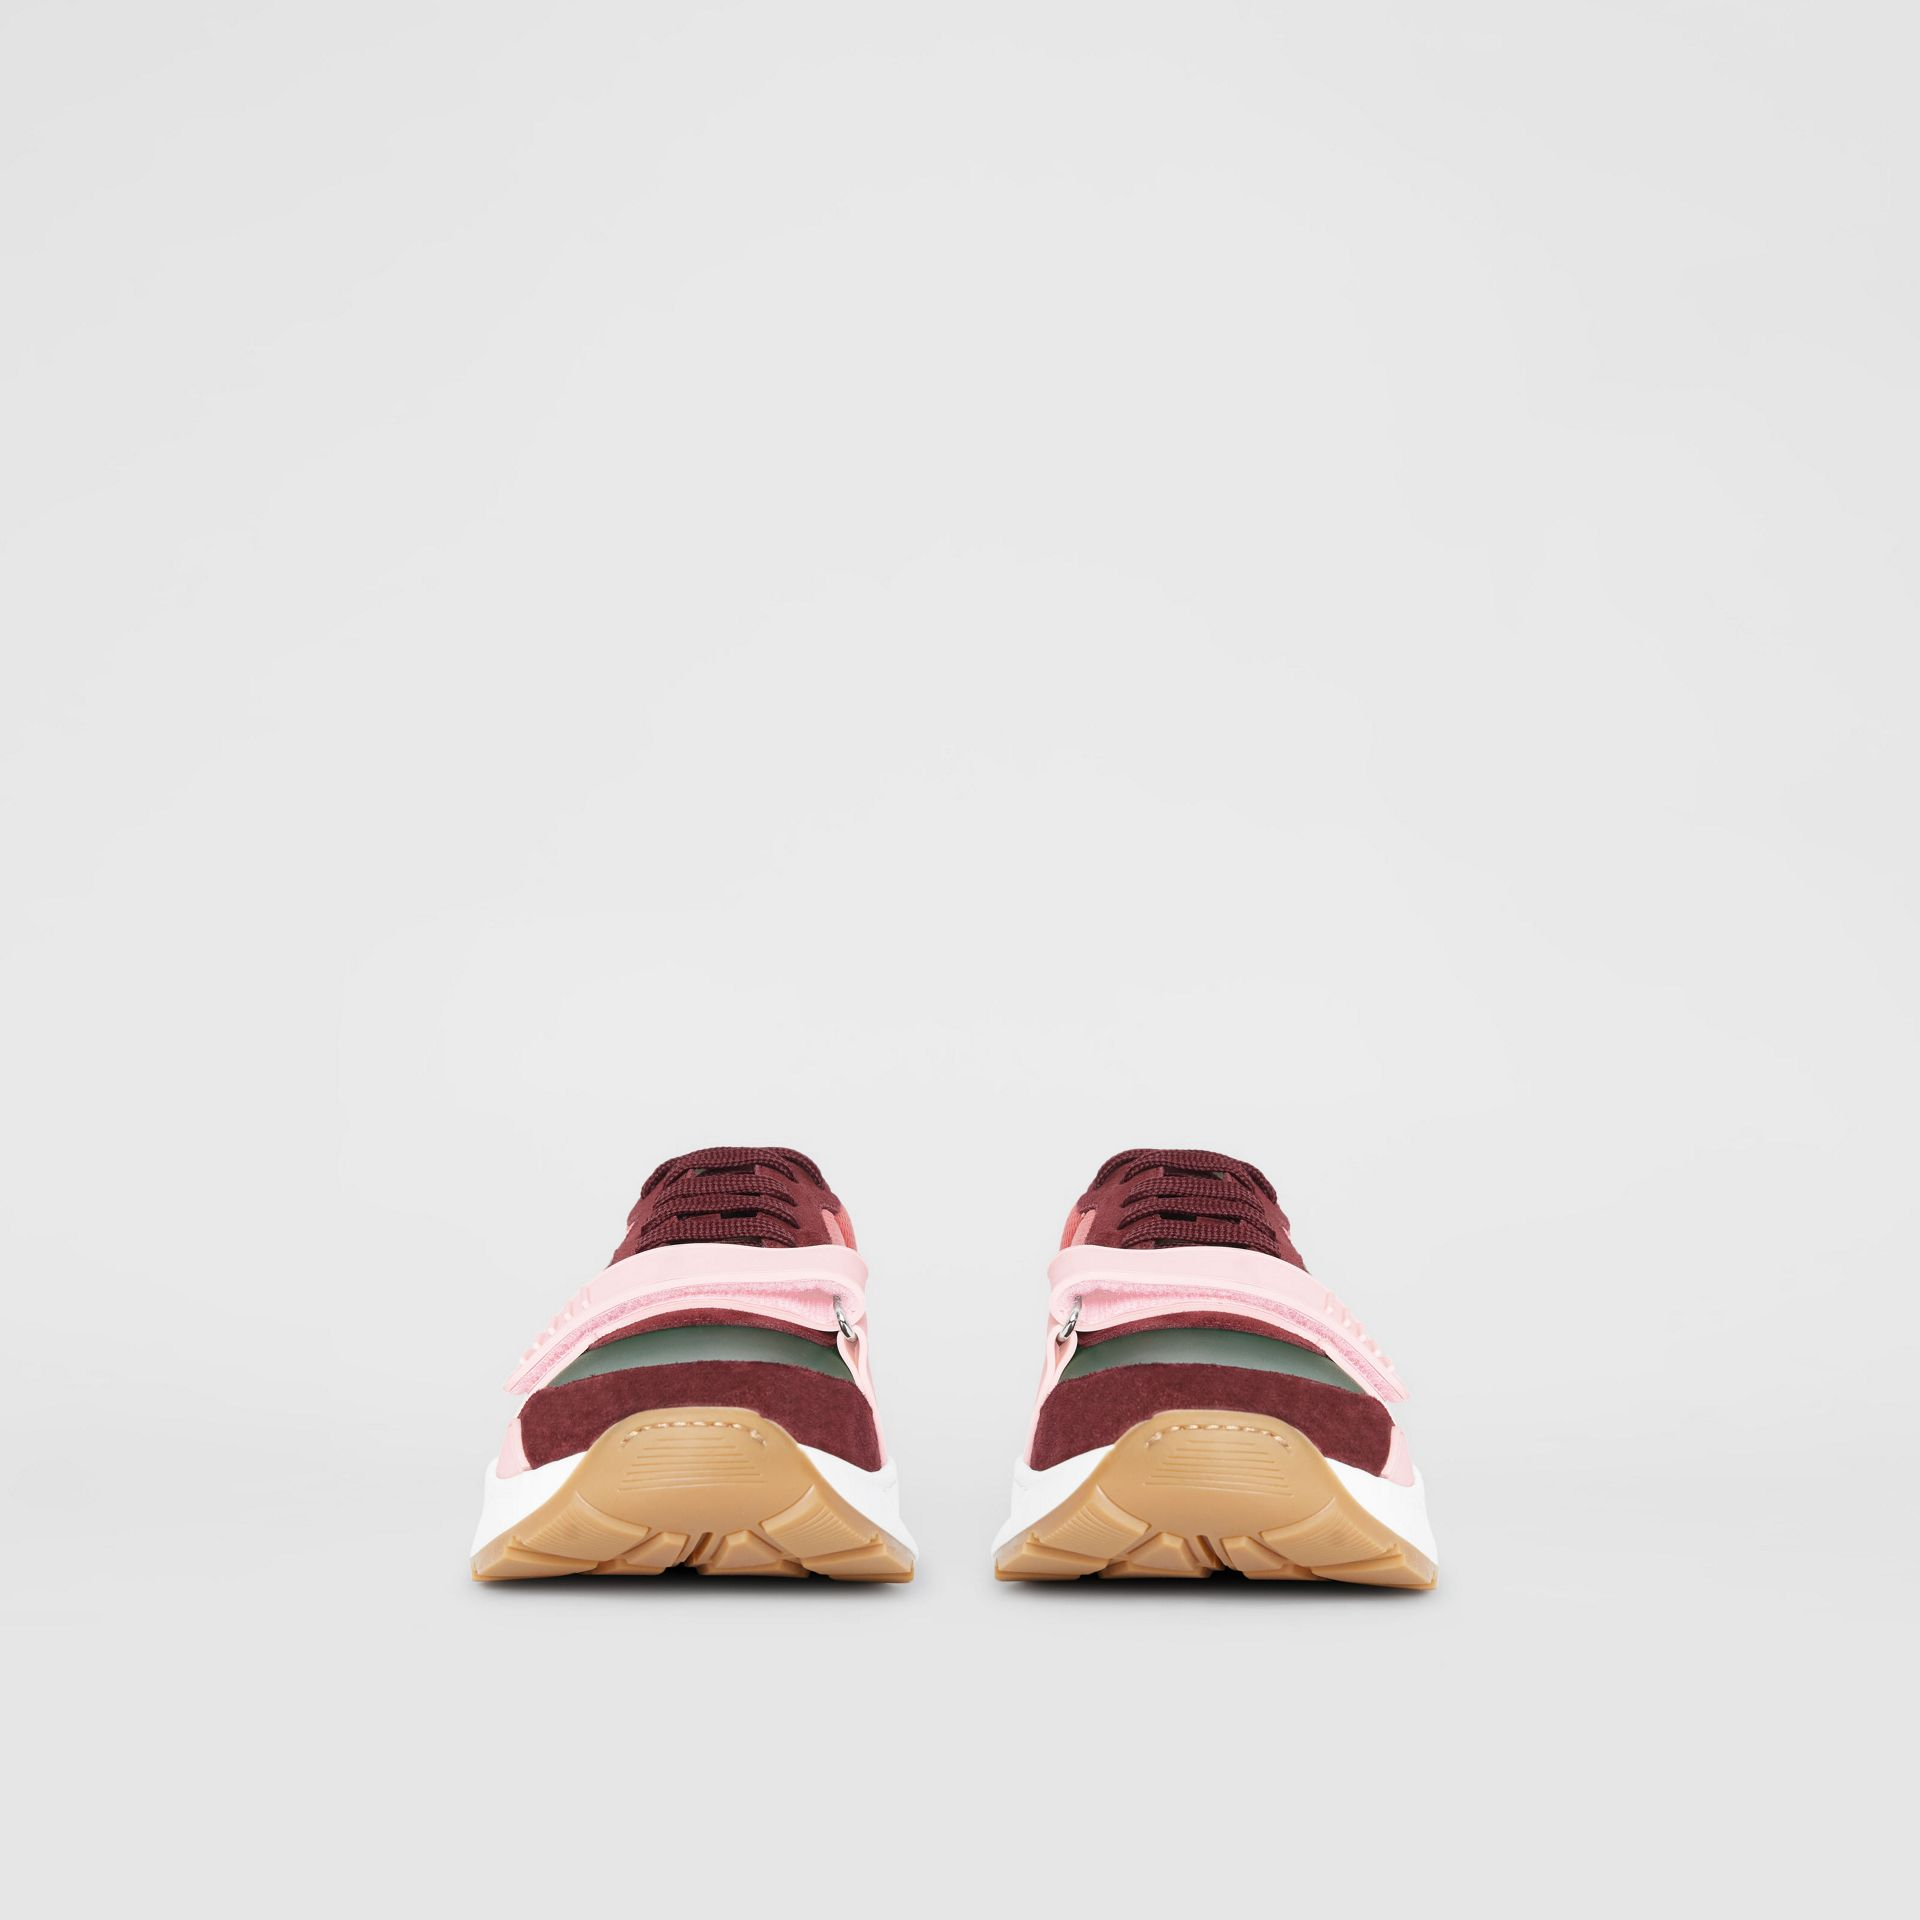 Colour Block Suede and Neoprene Sneakers in Bordeaux/khaki - Men | Burberry Hong Kong - gallery image 3